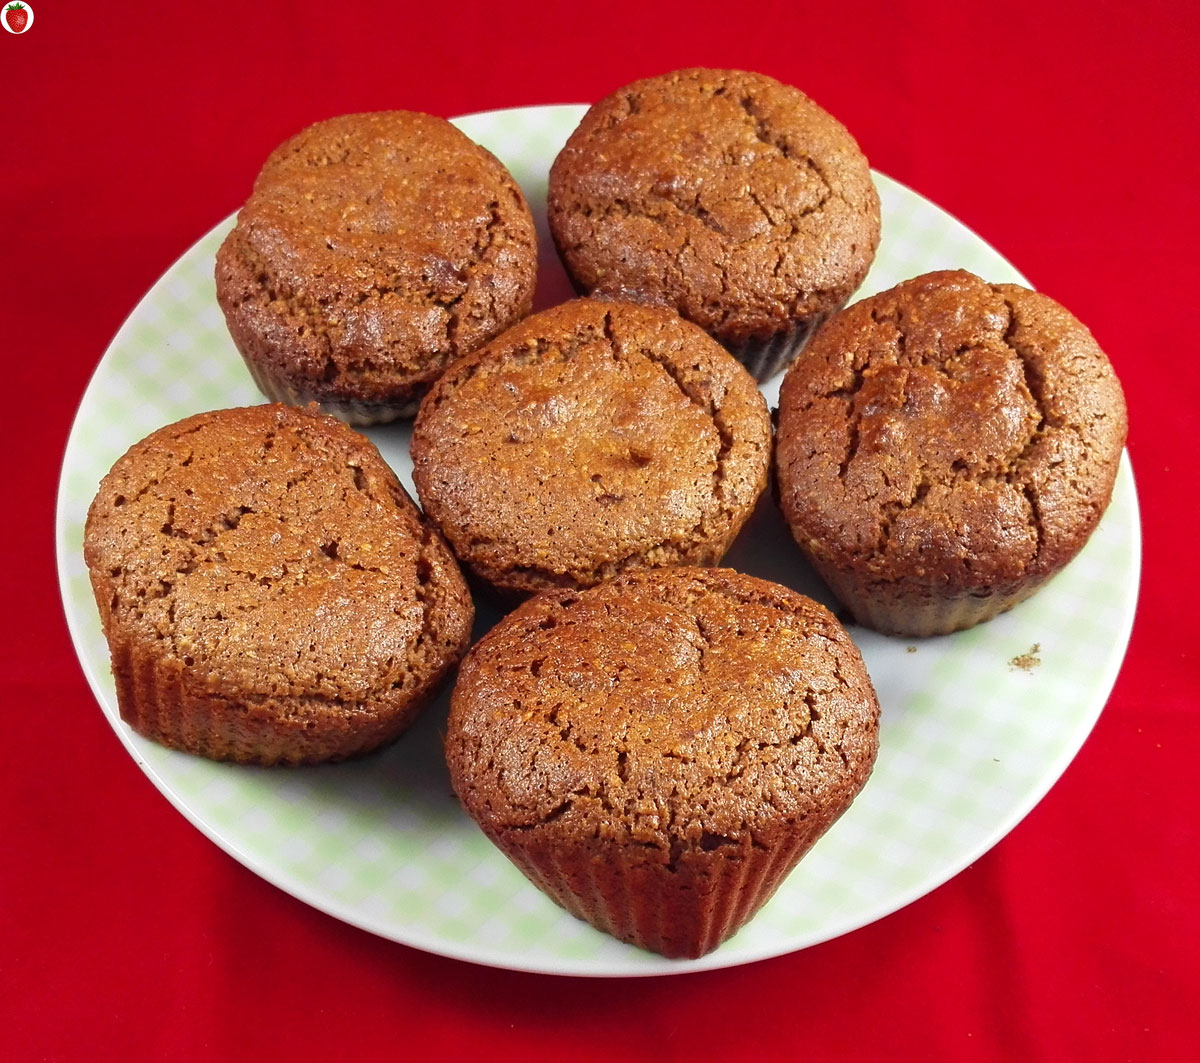 Delicious Paleo Coconut Chocolate Muffins (Dairy-Free, Gluten-Free)